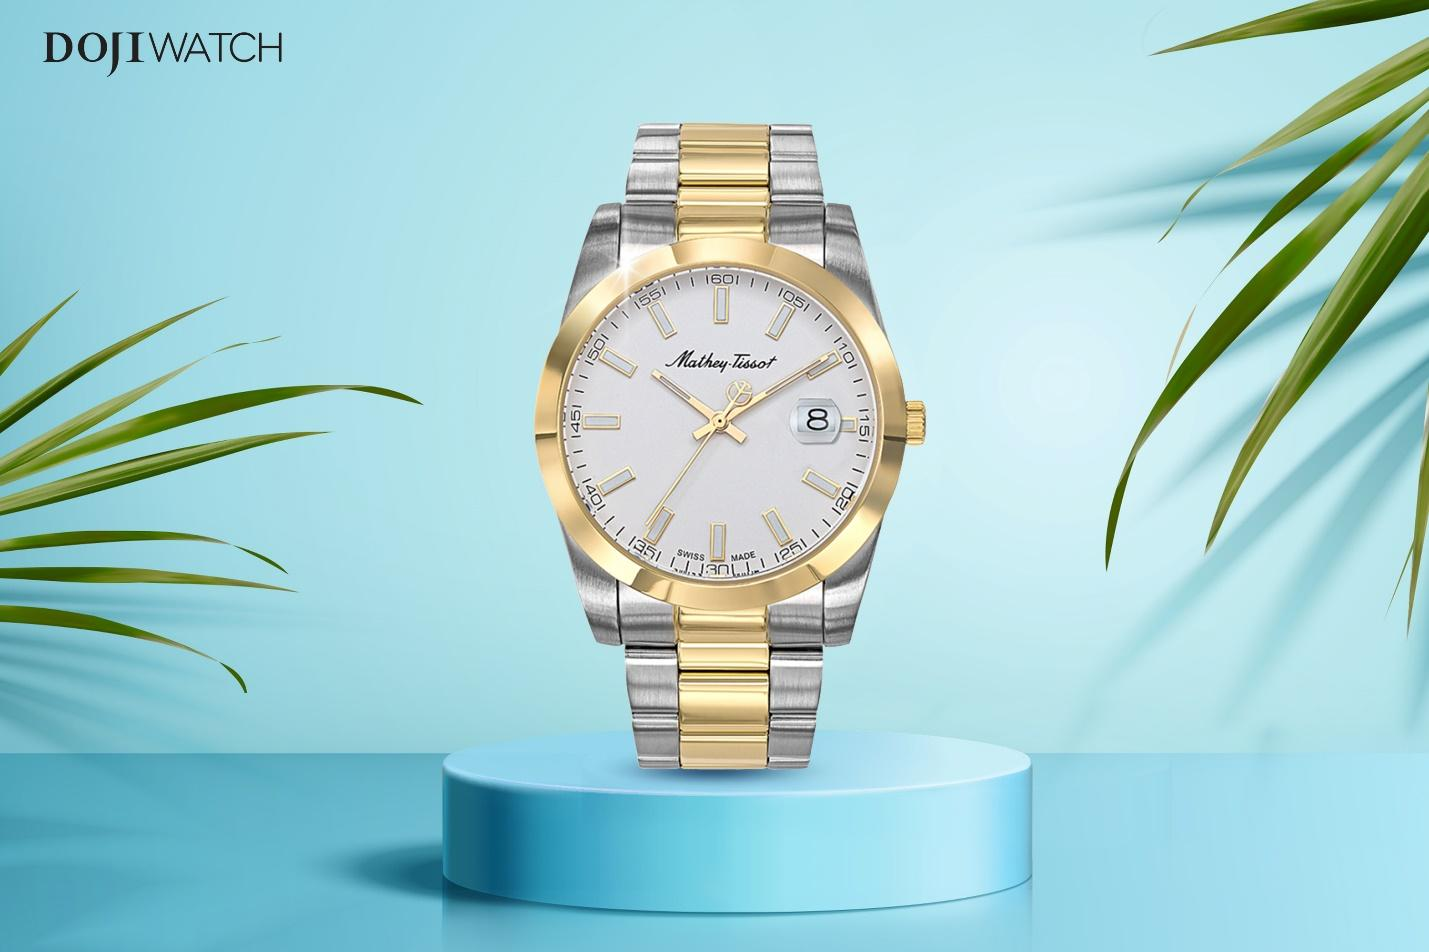 A picture containing clock, watch, palmDescription automatically generated